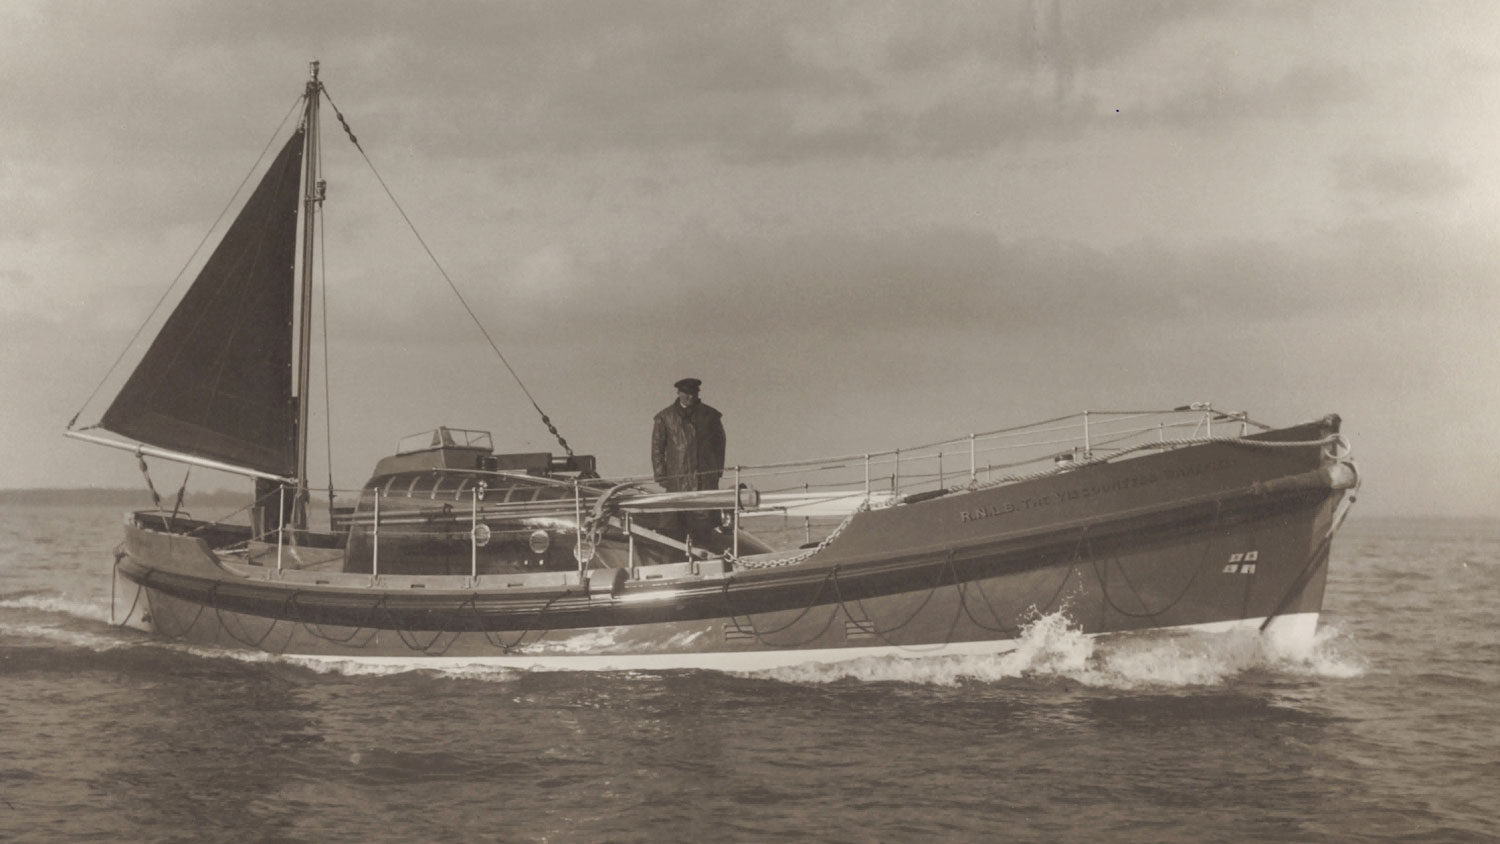 Hythe lifeboat, The Viscountess Wakefield